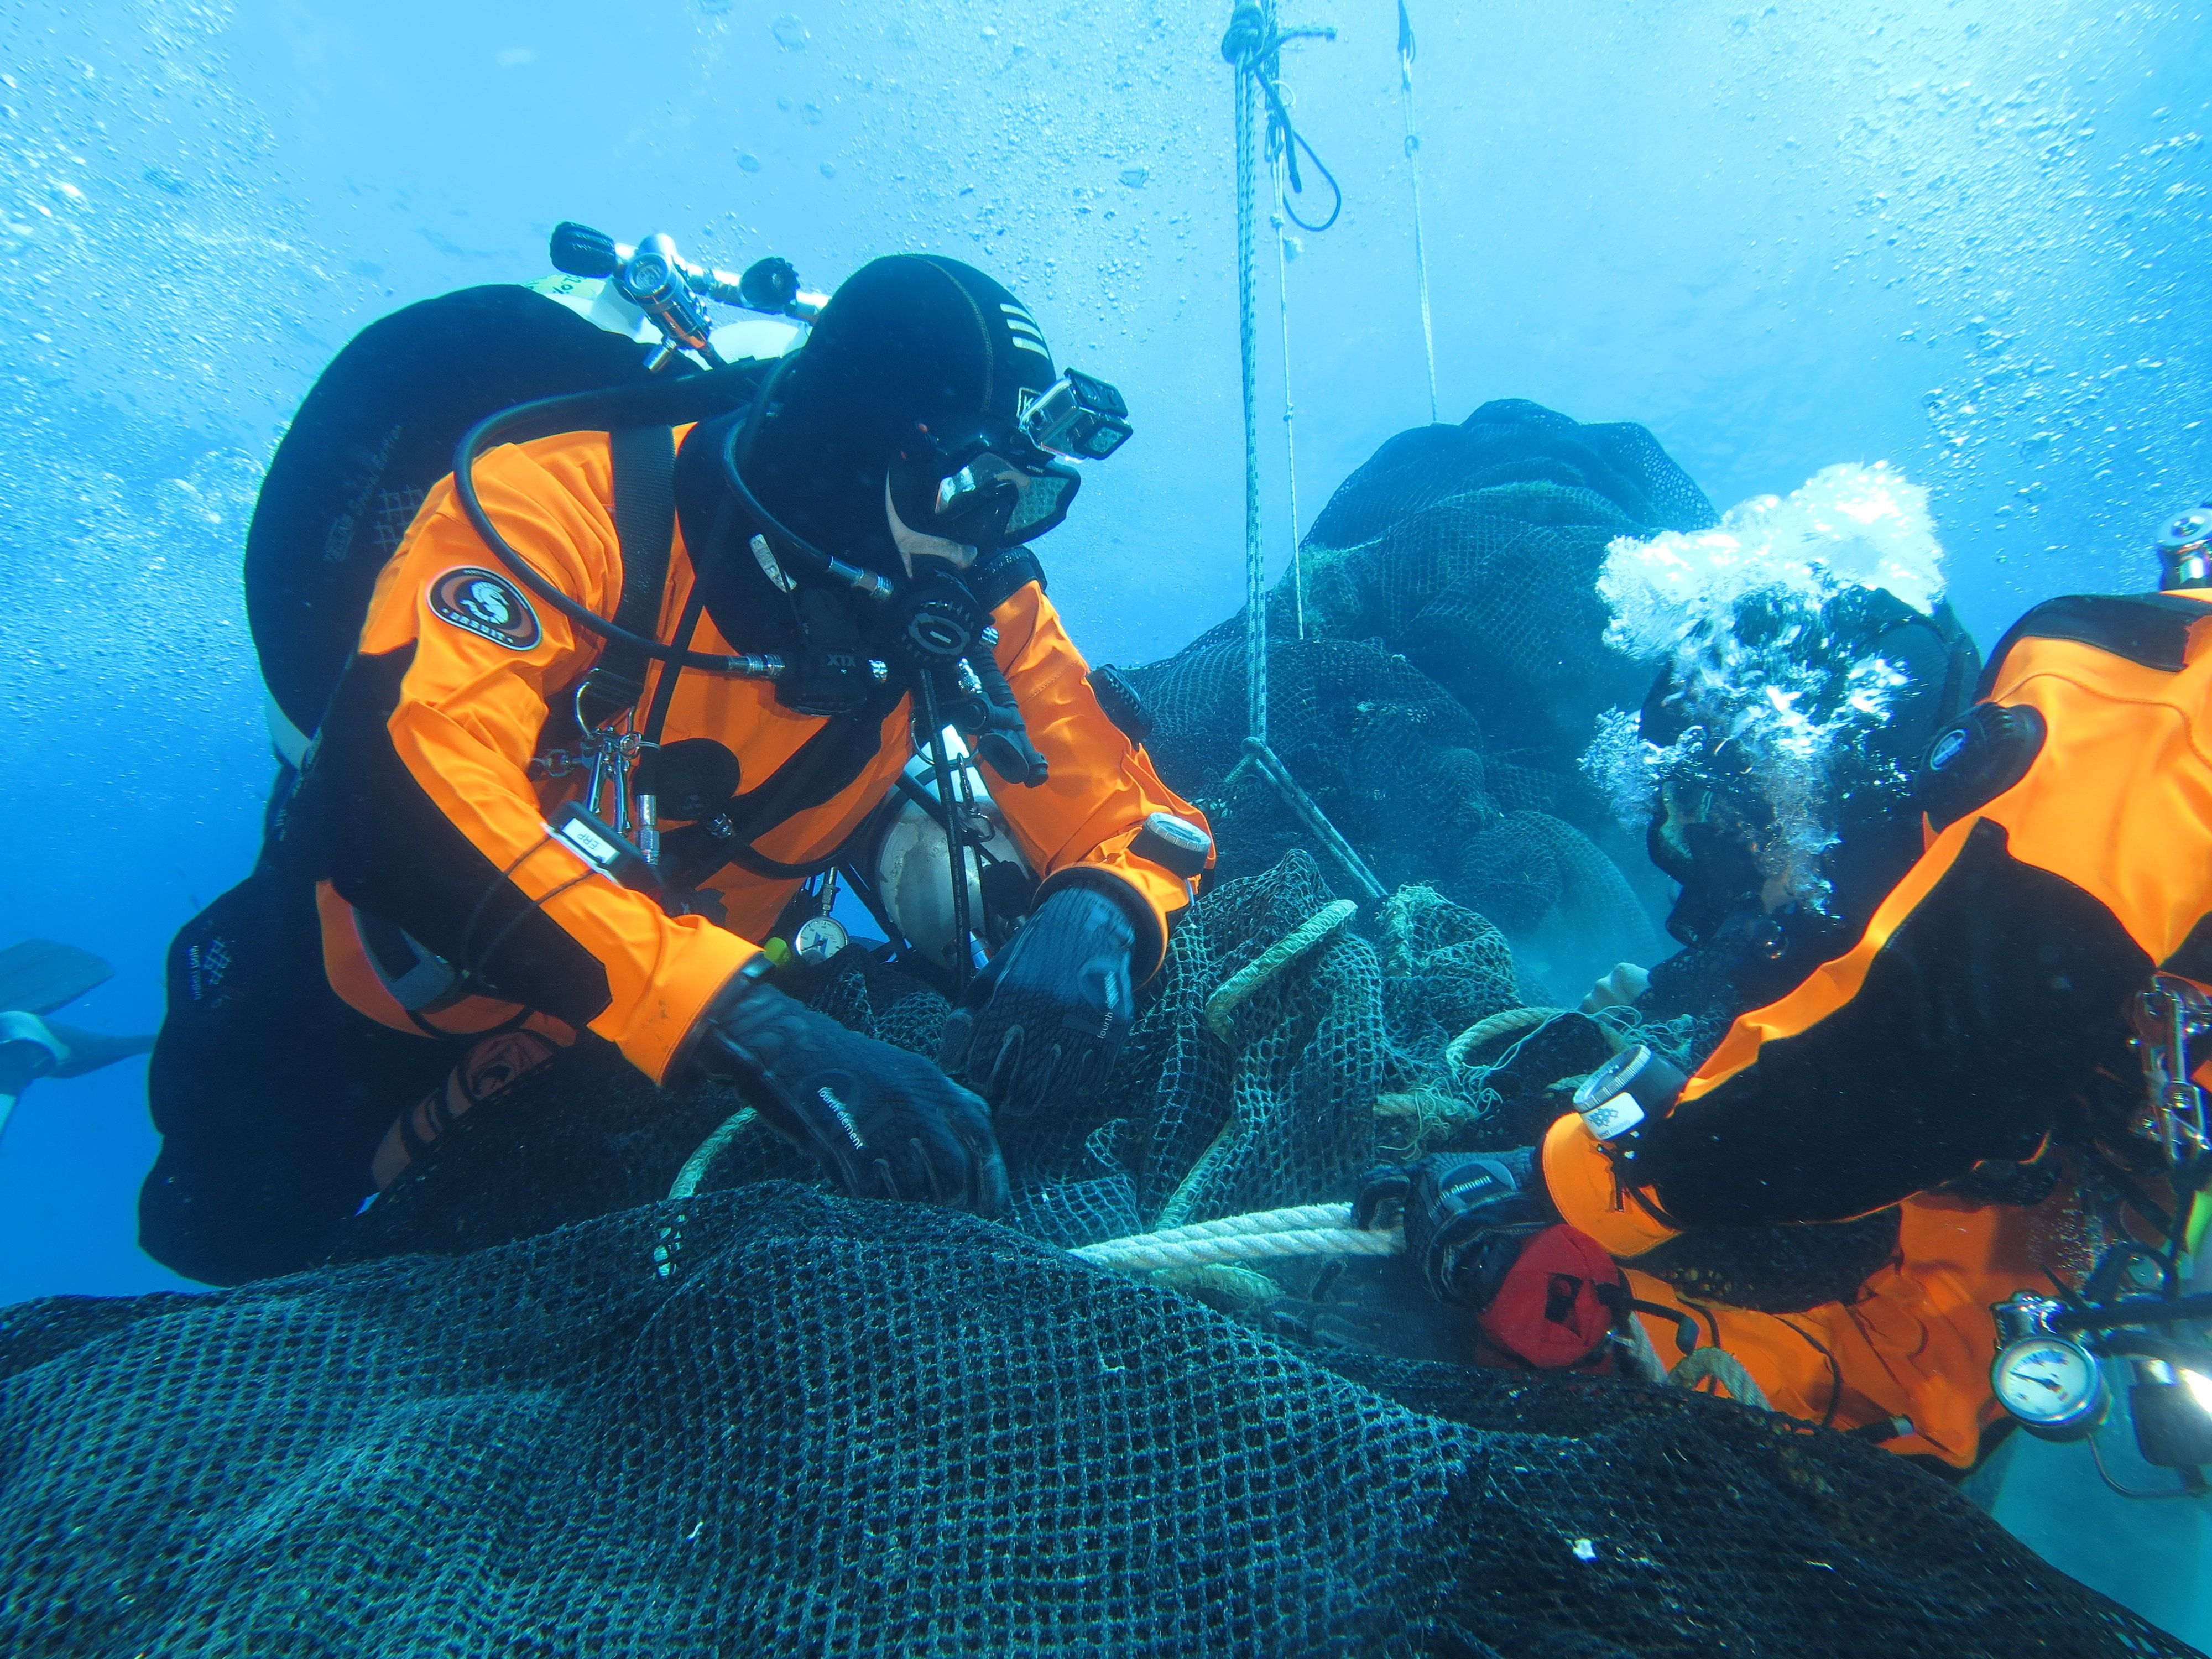 Divers recover a massive, abandoned fishing net that's been damaging the marine ecosystem off the coast of the Aeolian Islands for 10 years.